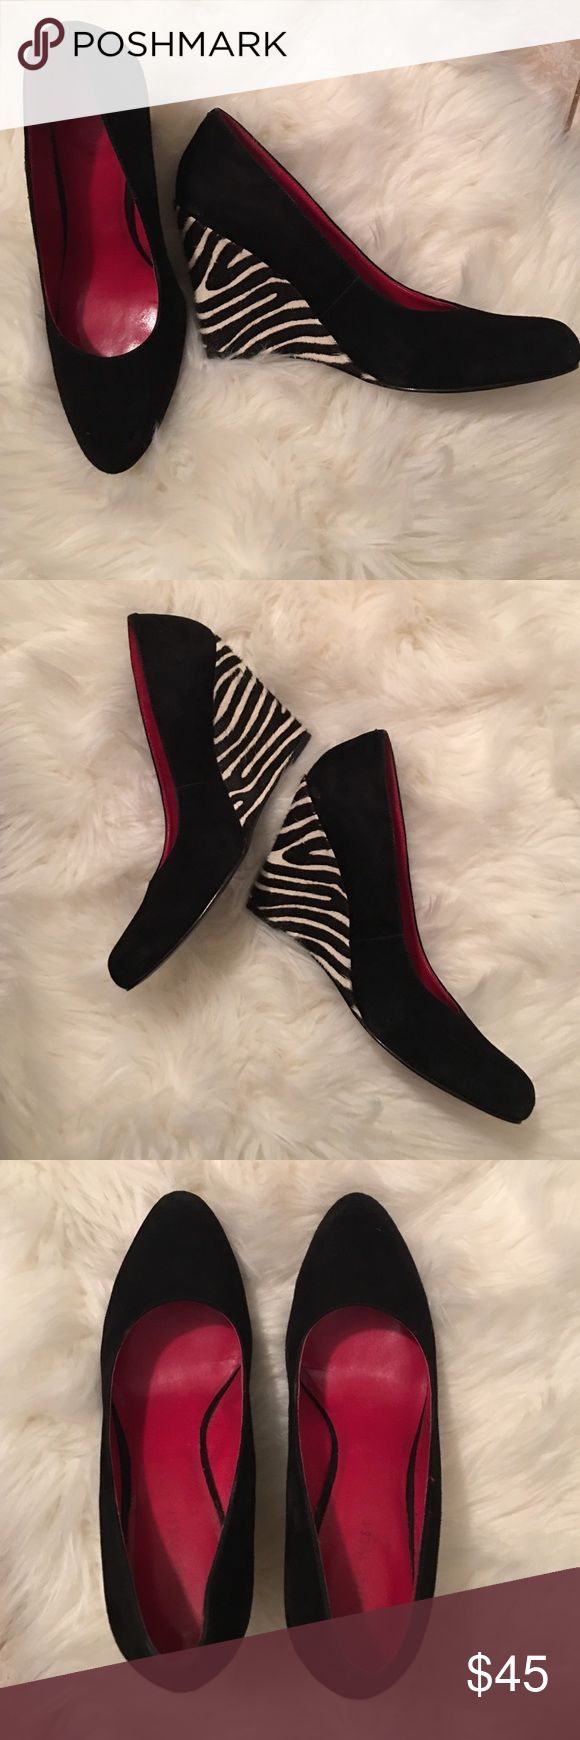 Nine West zebra heels red shoes Zebra heel Nine West black wedges Nine West Shoes Wedges